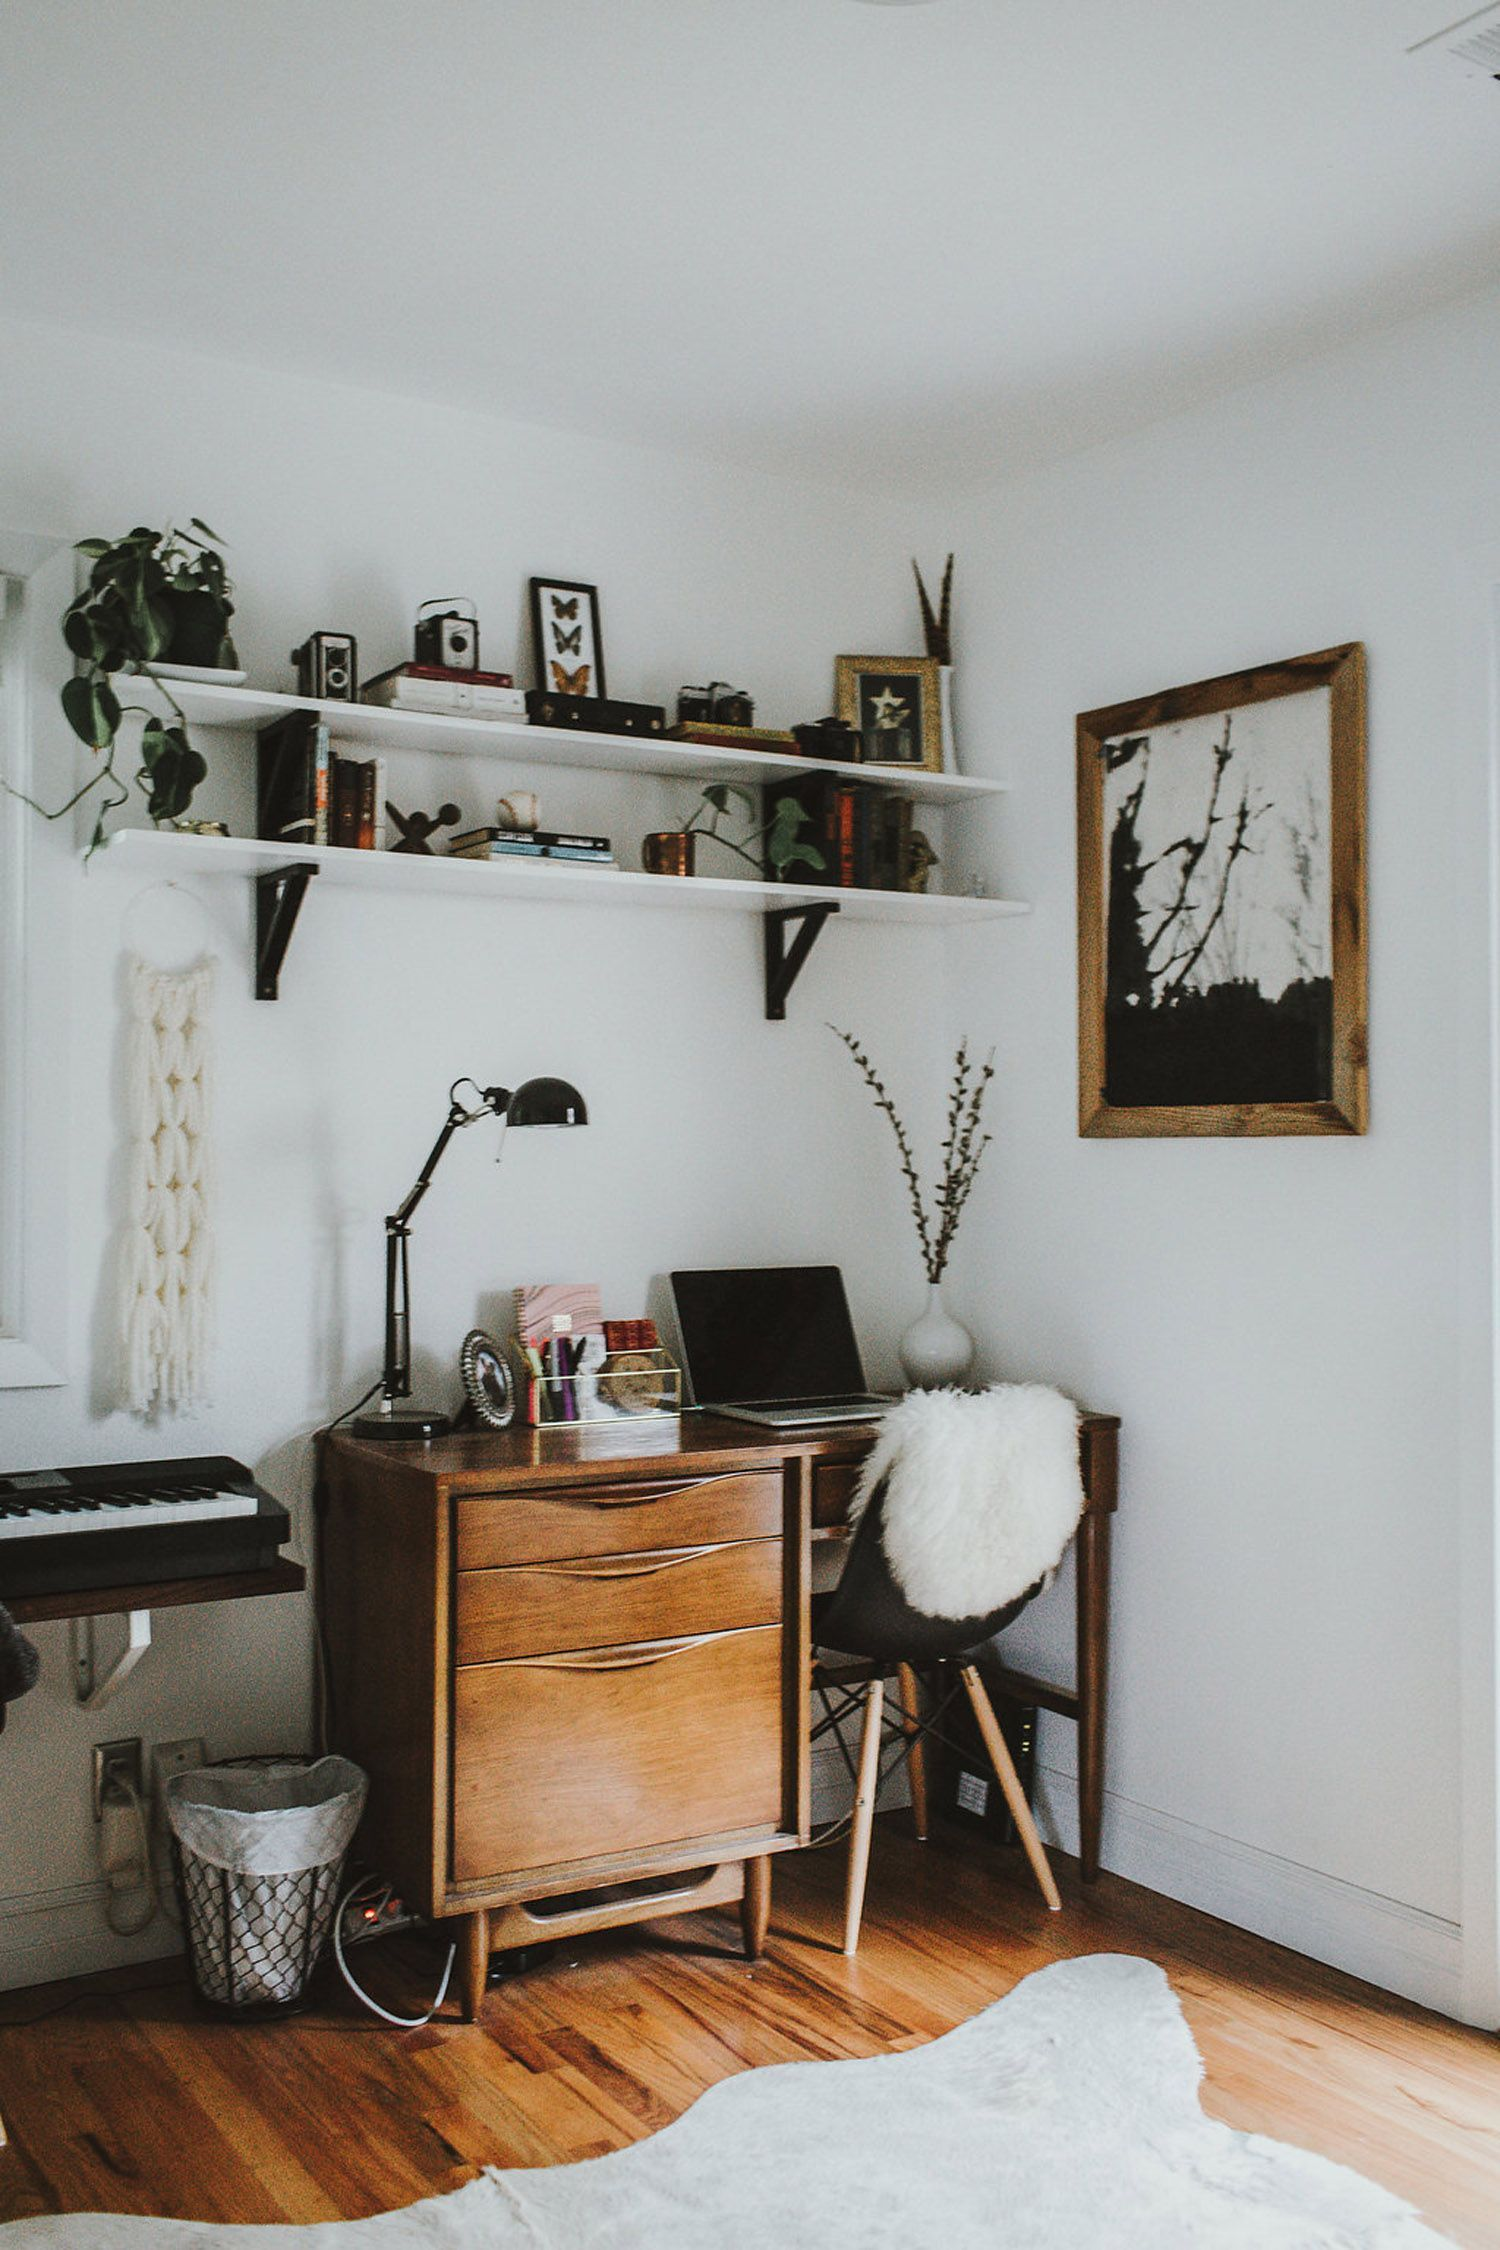 Discover The Best Vintage Style Office Decor Inspiration For Your